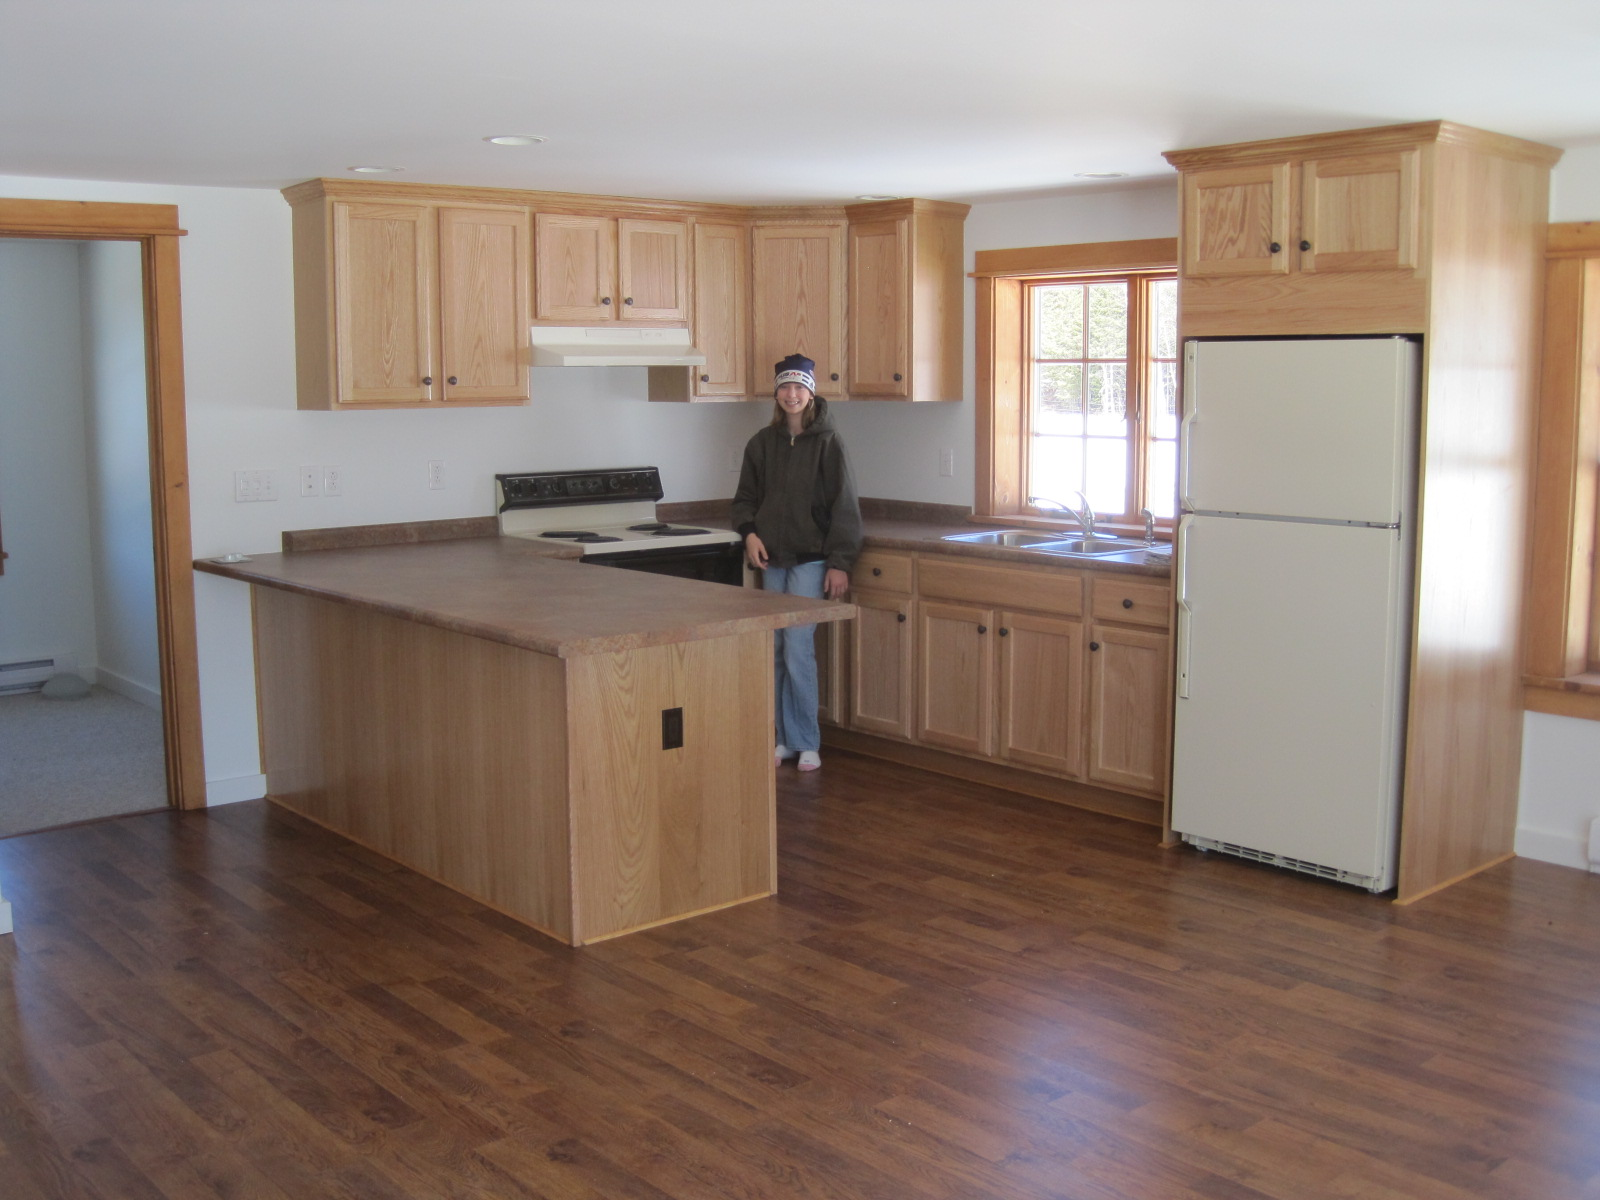 Laminate flooring lay laminate flooring australia for Are kitchen cabinets installed on top of flooring